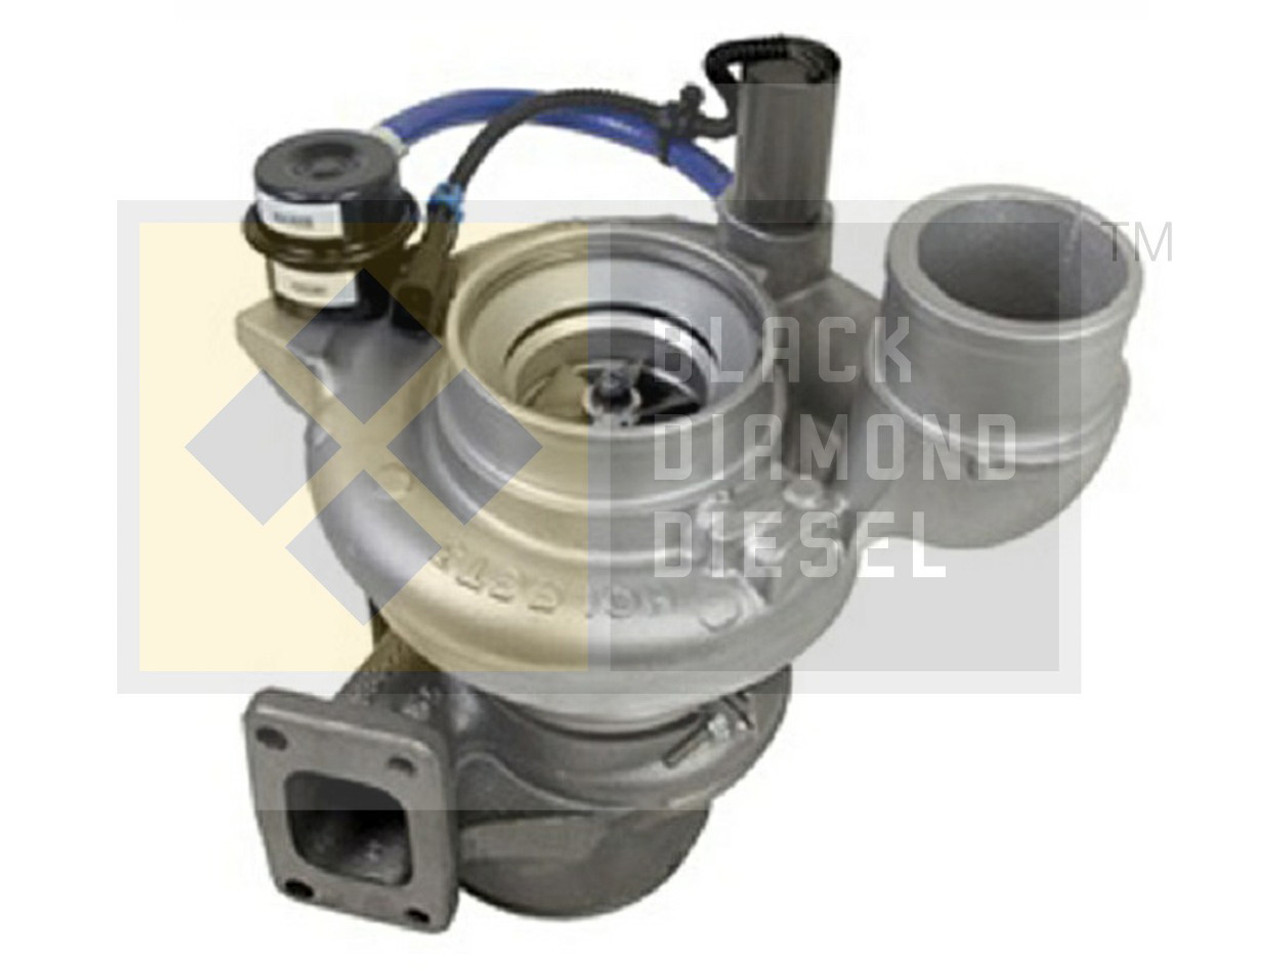 03-04 Dodge 5.9 Cummins Diesel Replacement Turbocharger